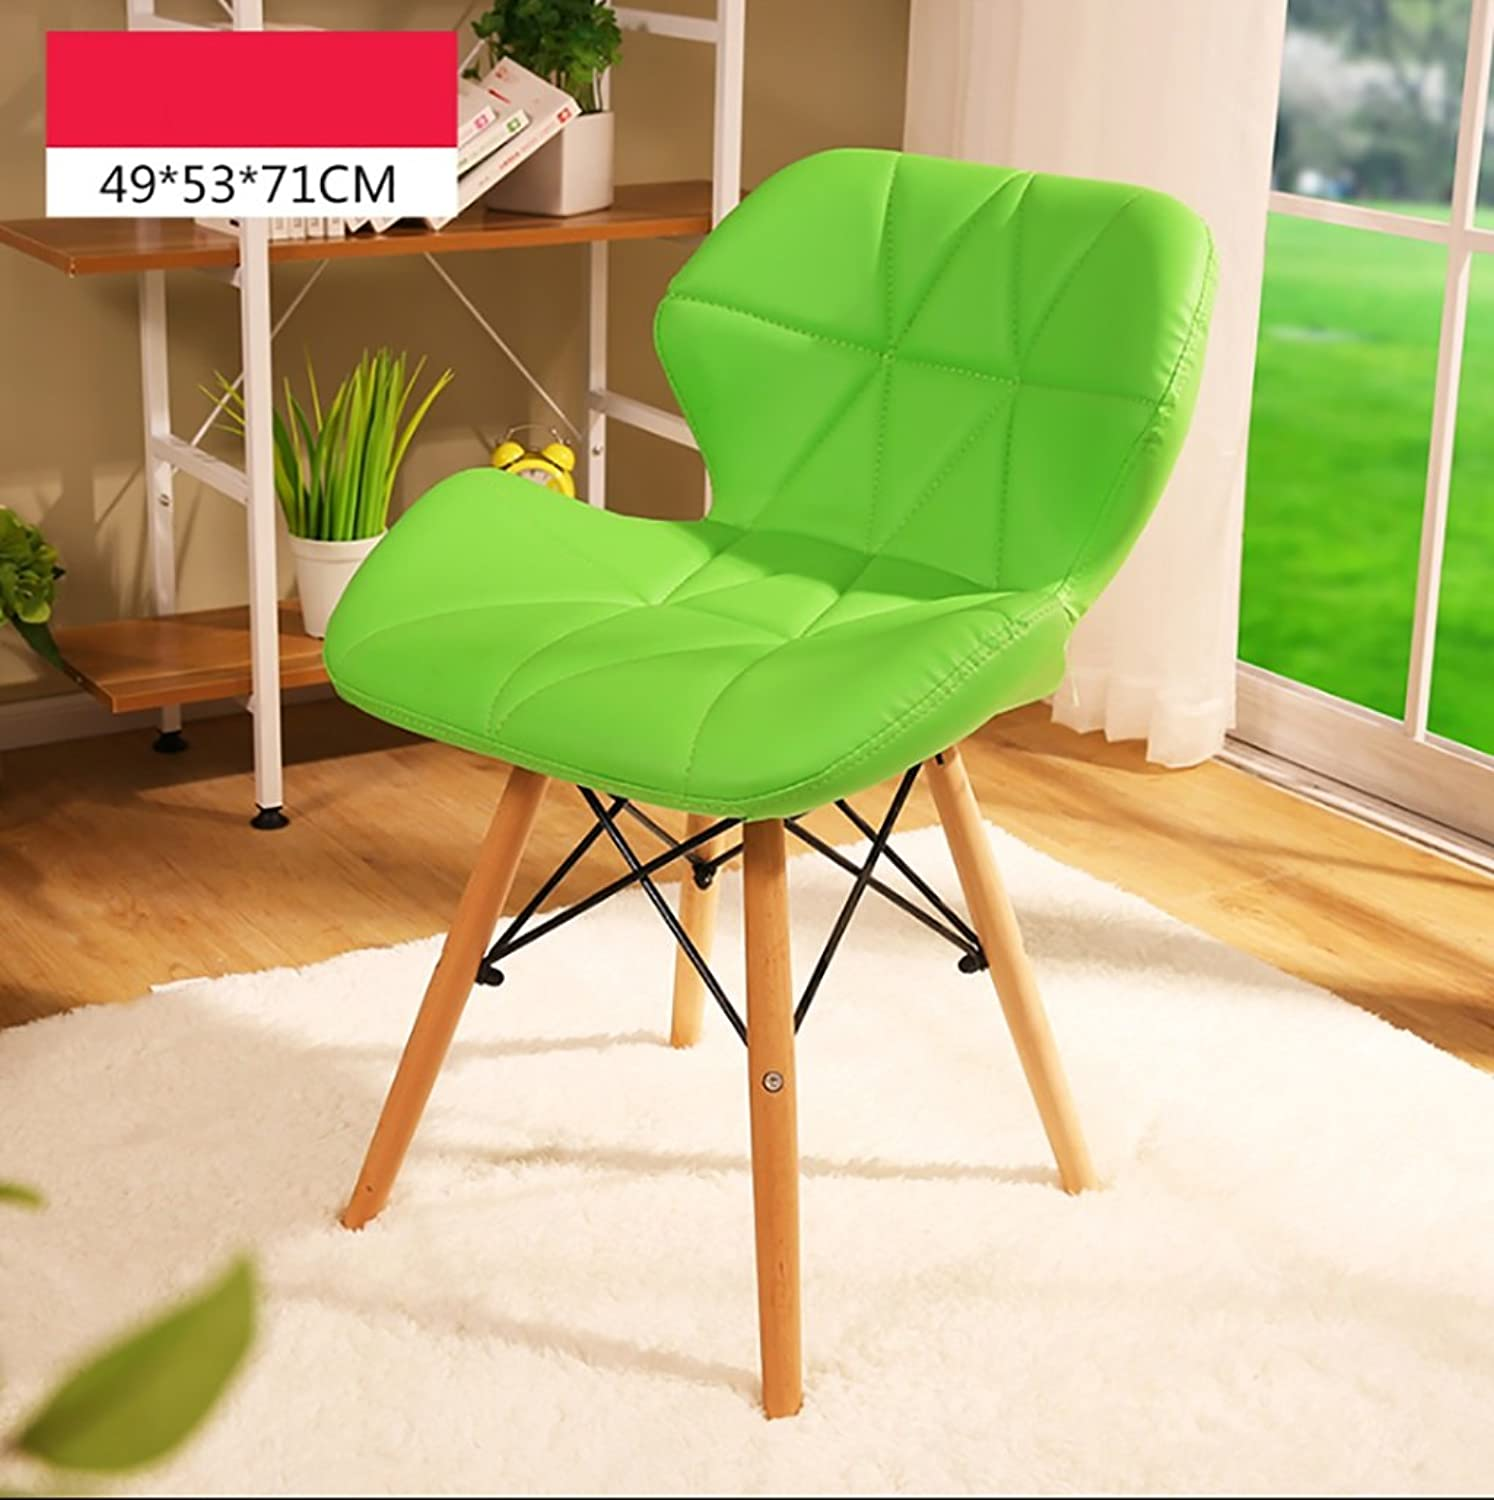 Easy to Clean PU Leather Casual Meeting Chair Fashion Upholstery Backrest Chair Environmental Predection raw Material Solid Wood Foot Computer Chair Size  495371cm (color   Green)